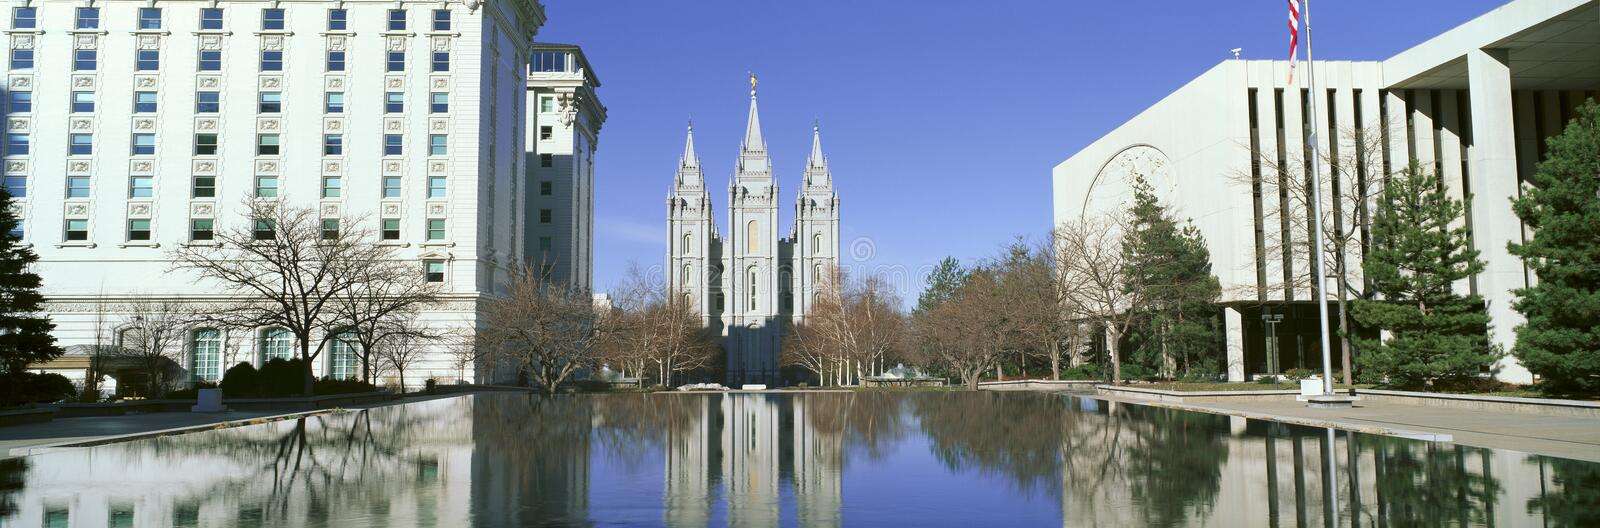 Historic Temple and Square in Salt Lake City, UT home of Mormon Tabernacle Choir stock image